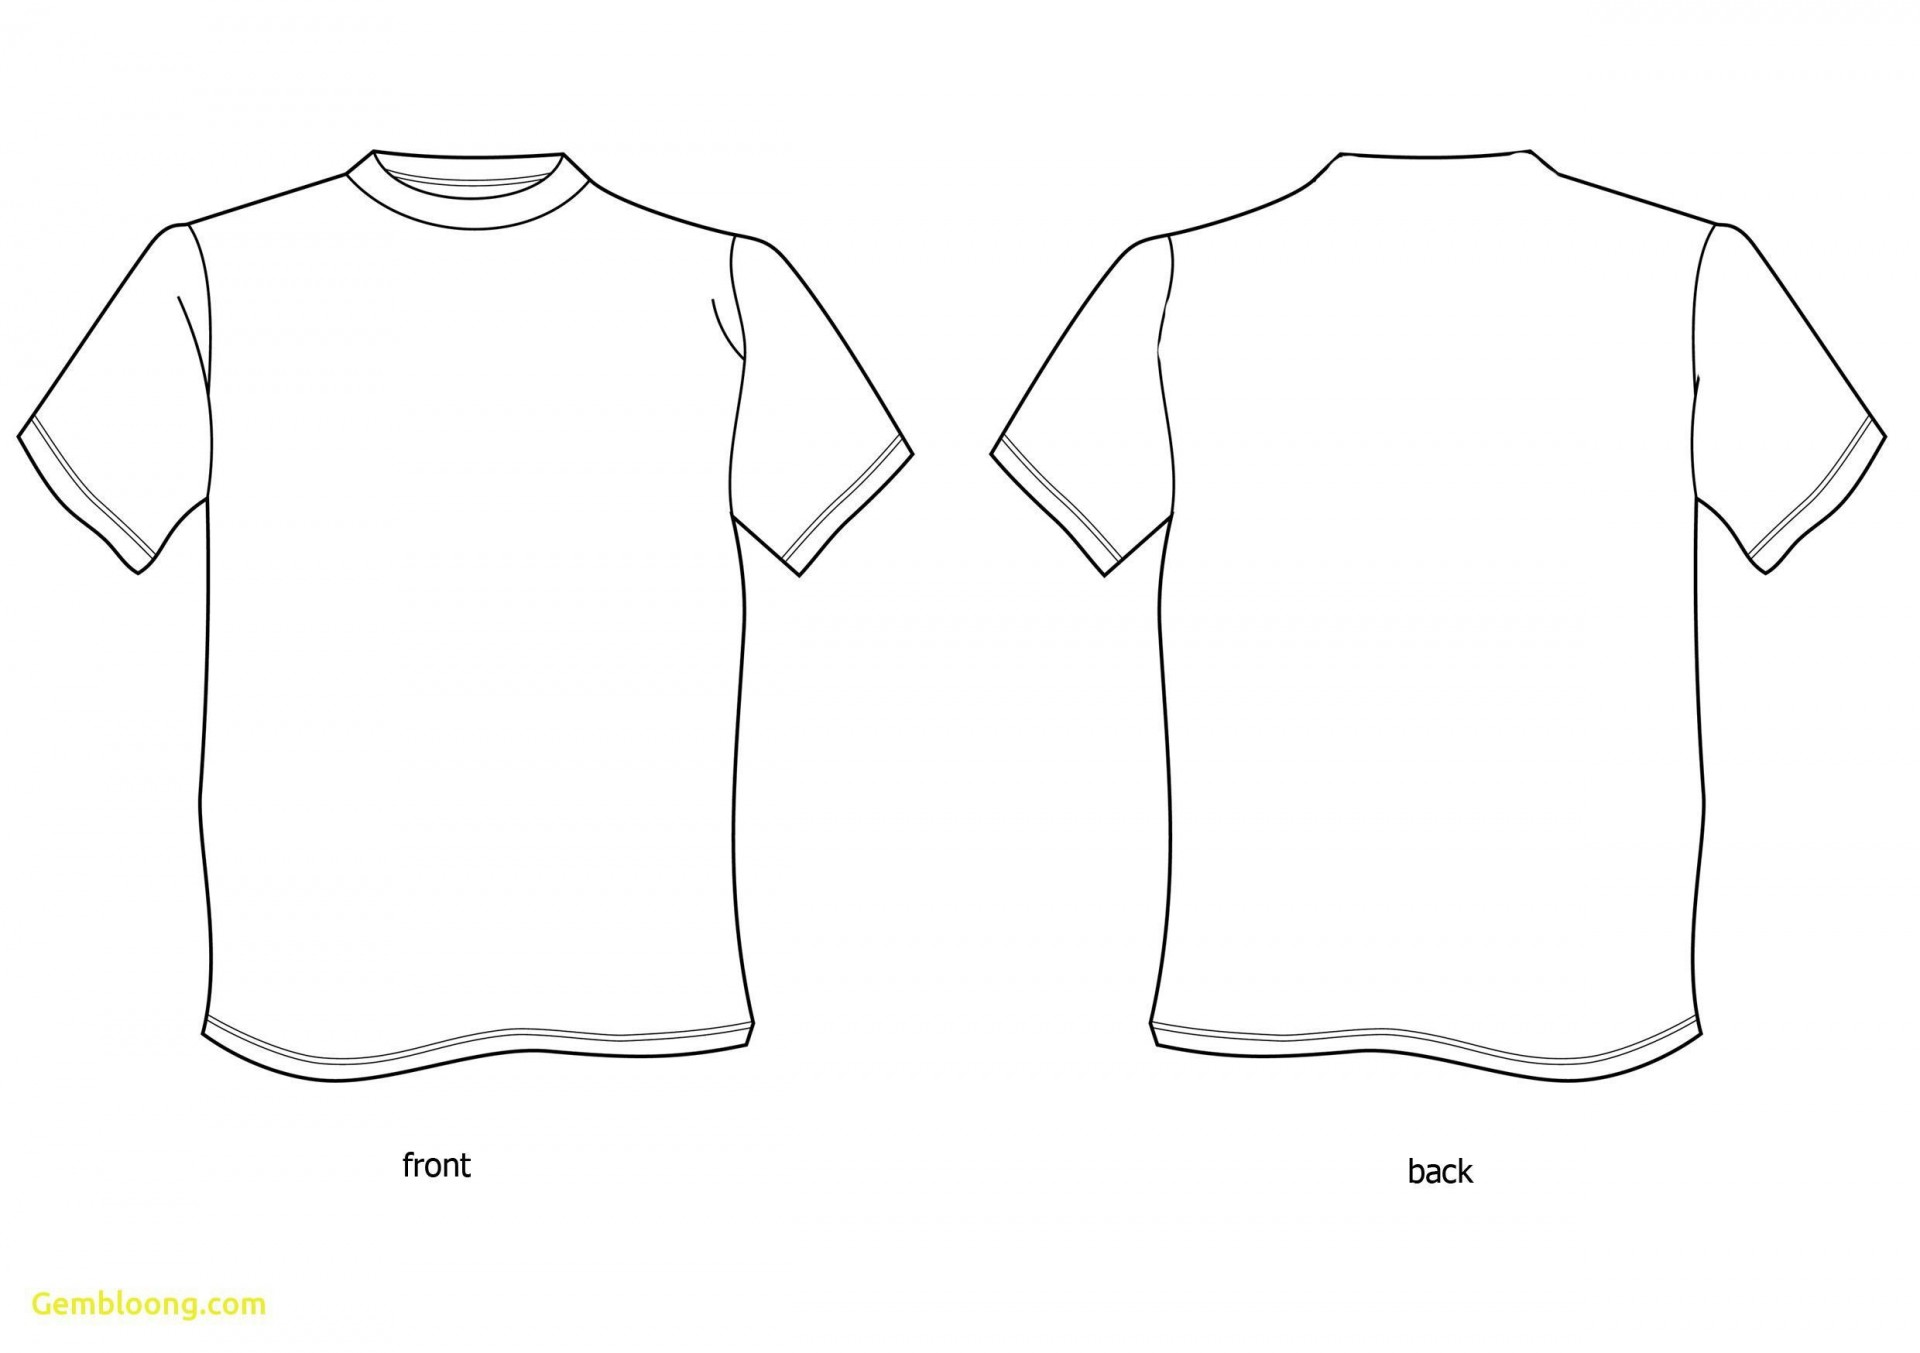 000 Magnificent T Shirt Template Design High Resolution  Psd Free Download Editable1920